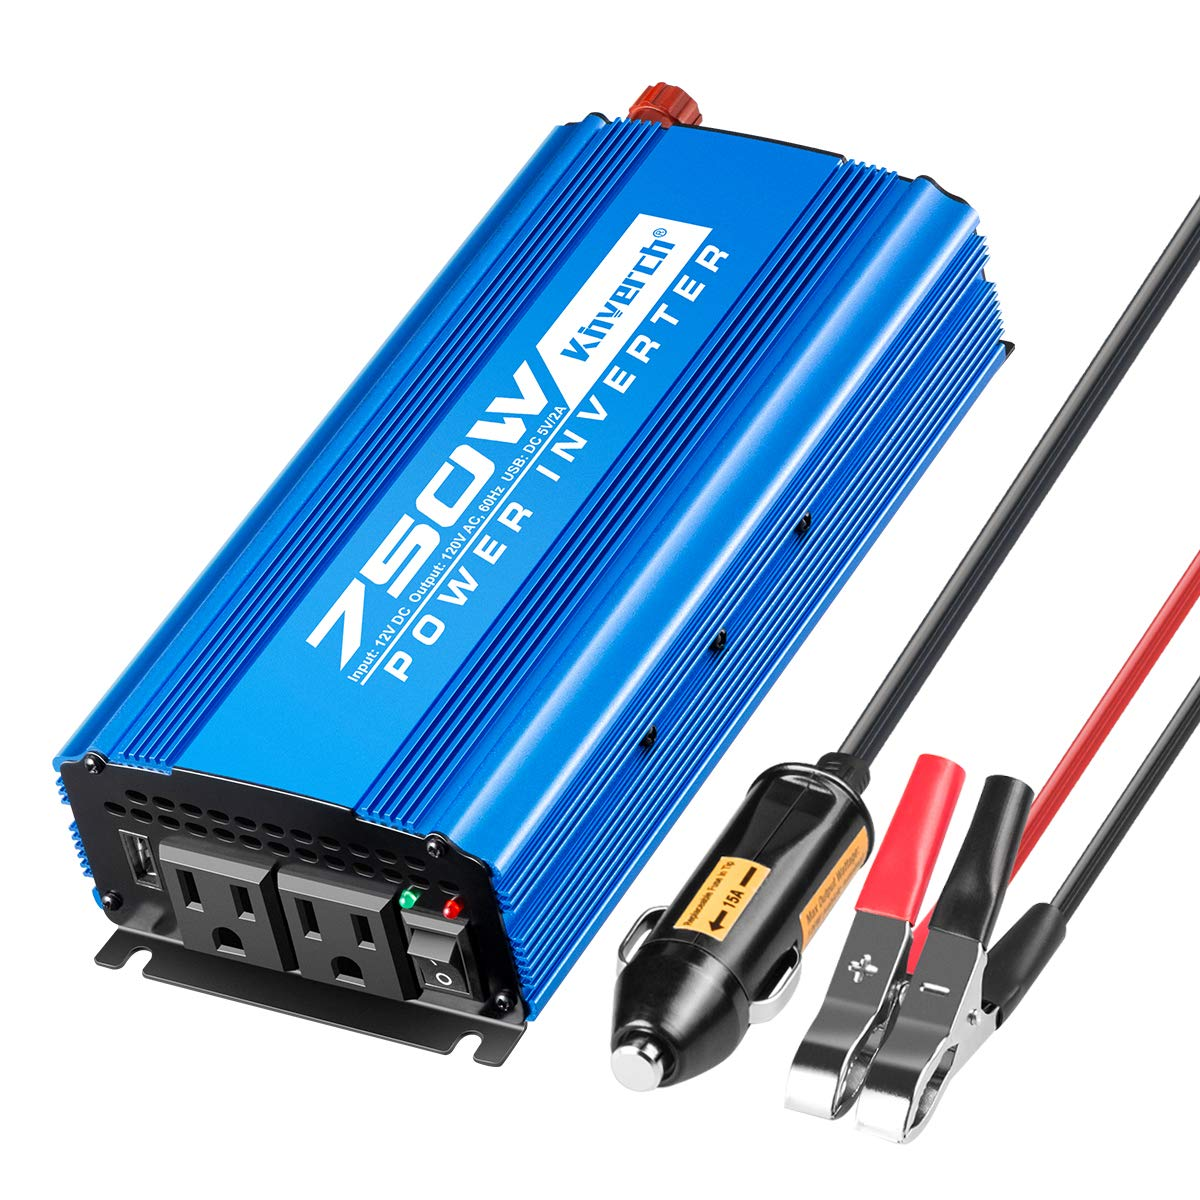 Kinverch 750W Continuous/1500W Peak Power Inverter DC 12V to 110V Car Converter AC with 2 AC Outlets and 2A USB Charging Port by kinverch